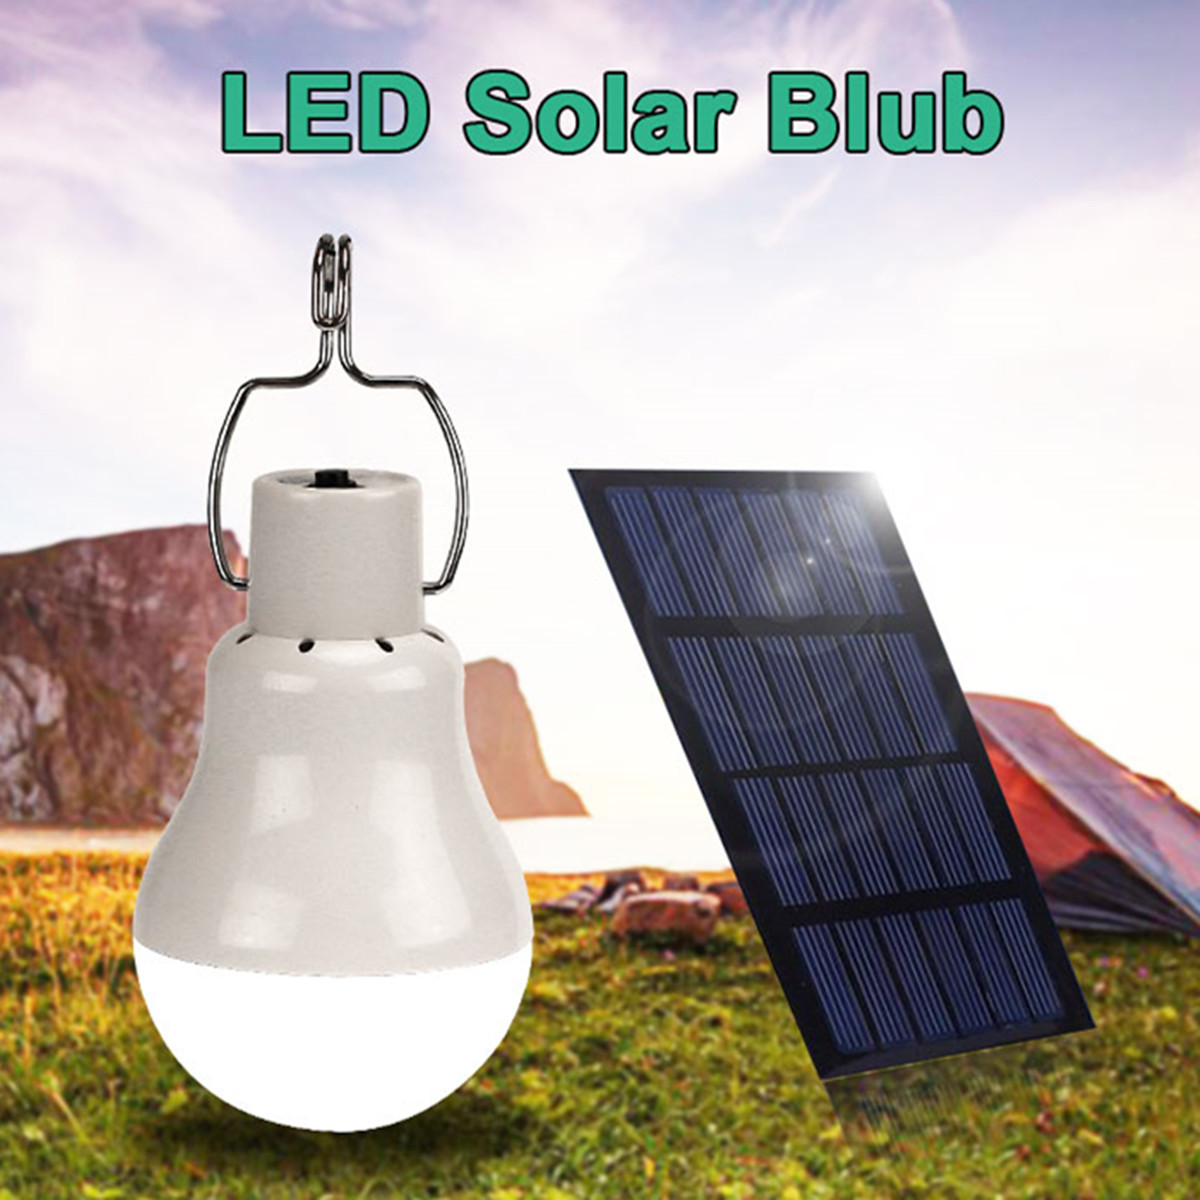 15W/20W Portable Outdoor Camping Solar Panel  LED Bulb Light Energy Clean Saving Lamp Long Life Expectancy Rechargeable